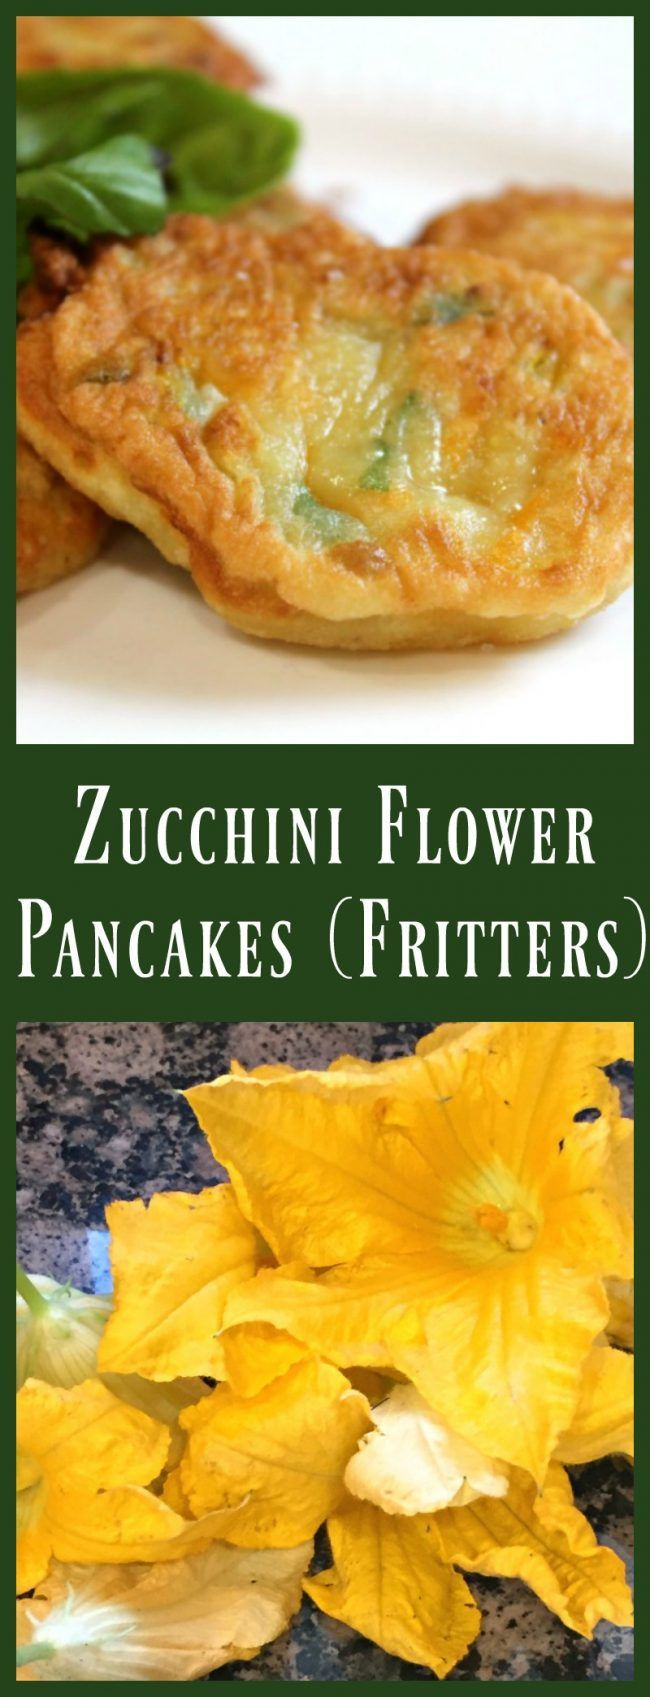 Zucchini Flower Pancakes (fritters)